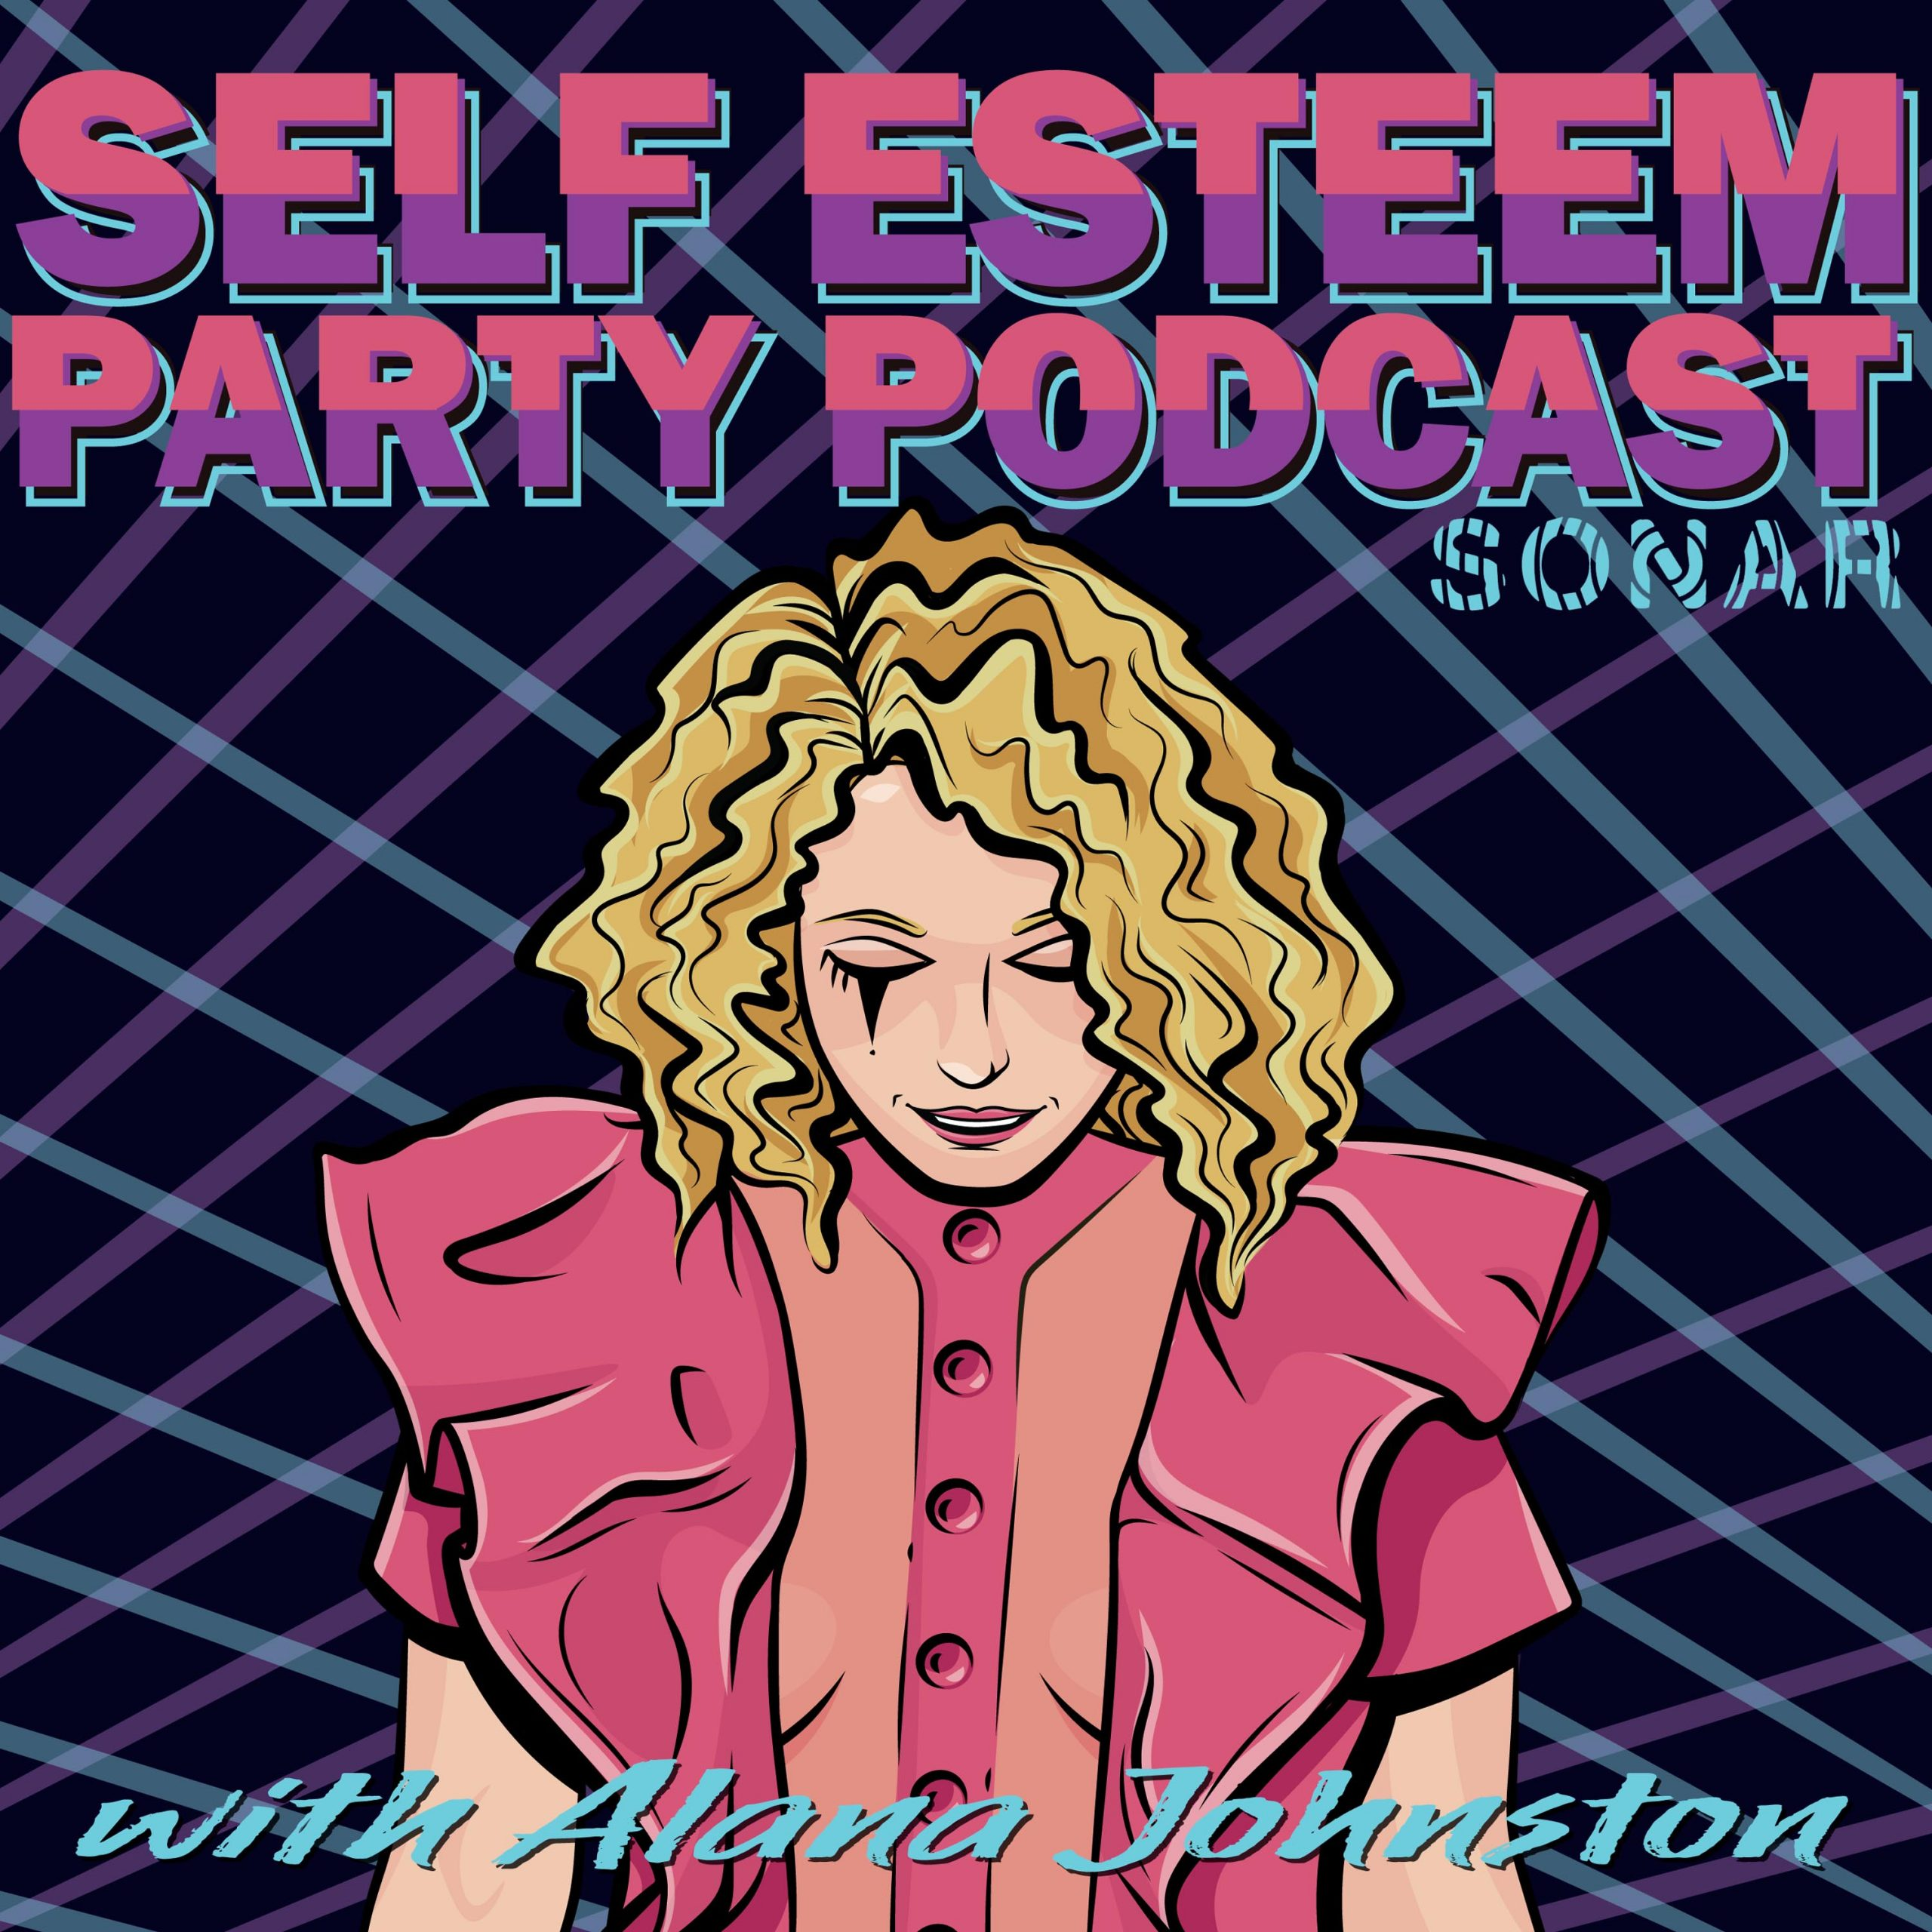 Self Esteem Party